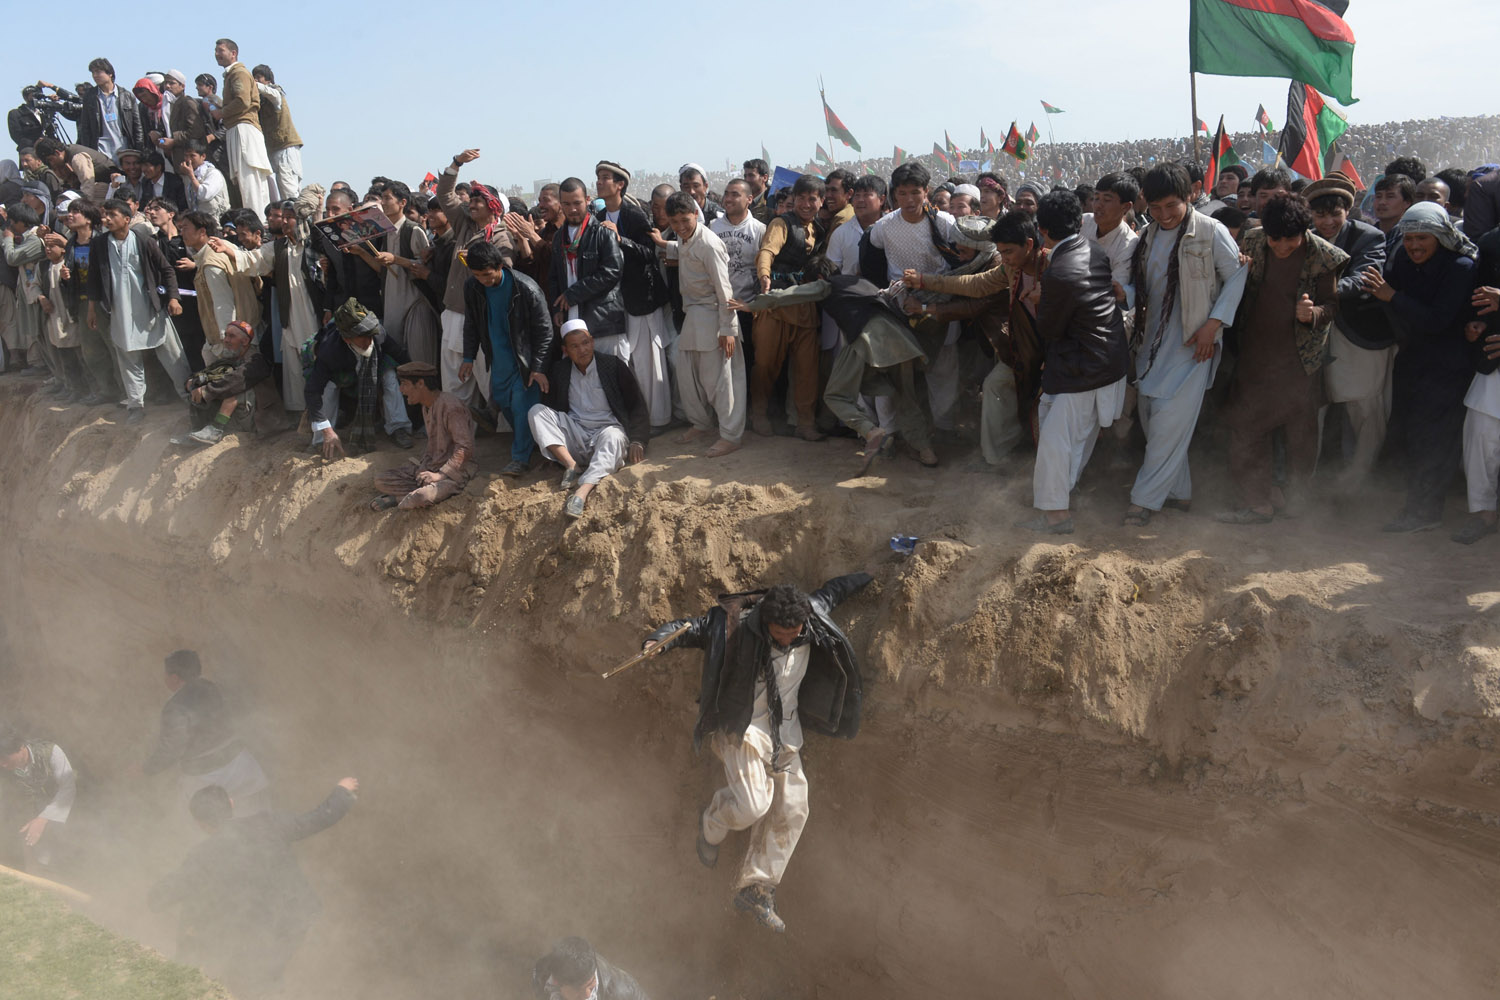 Mar. 19, 2014. Supporters of Afghan presidential candidate Ashraf Ghani jump to cross a ditch after a gathering in the outskirts of Kunduz province, north of Kabul.